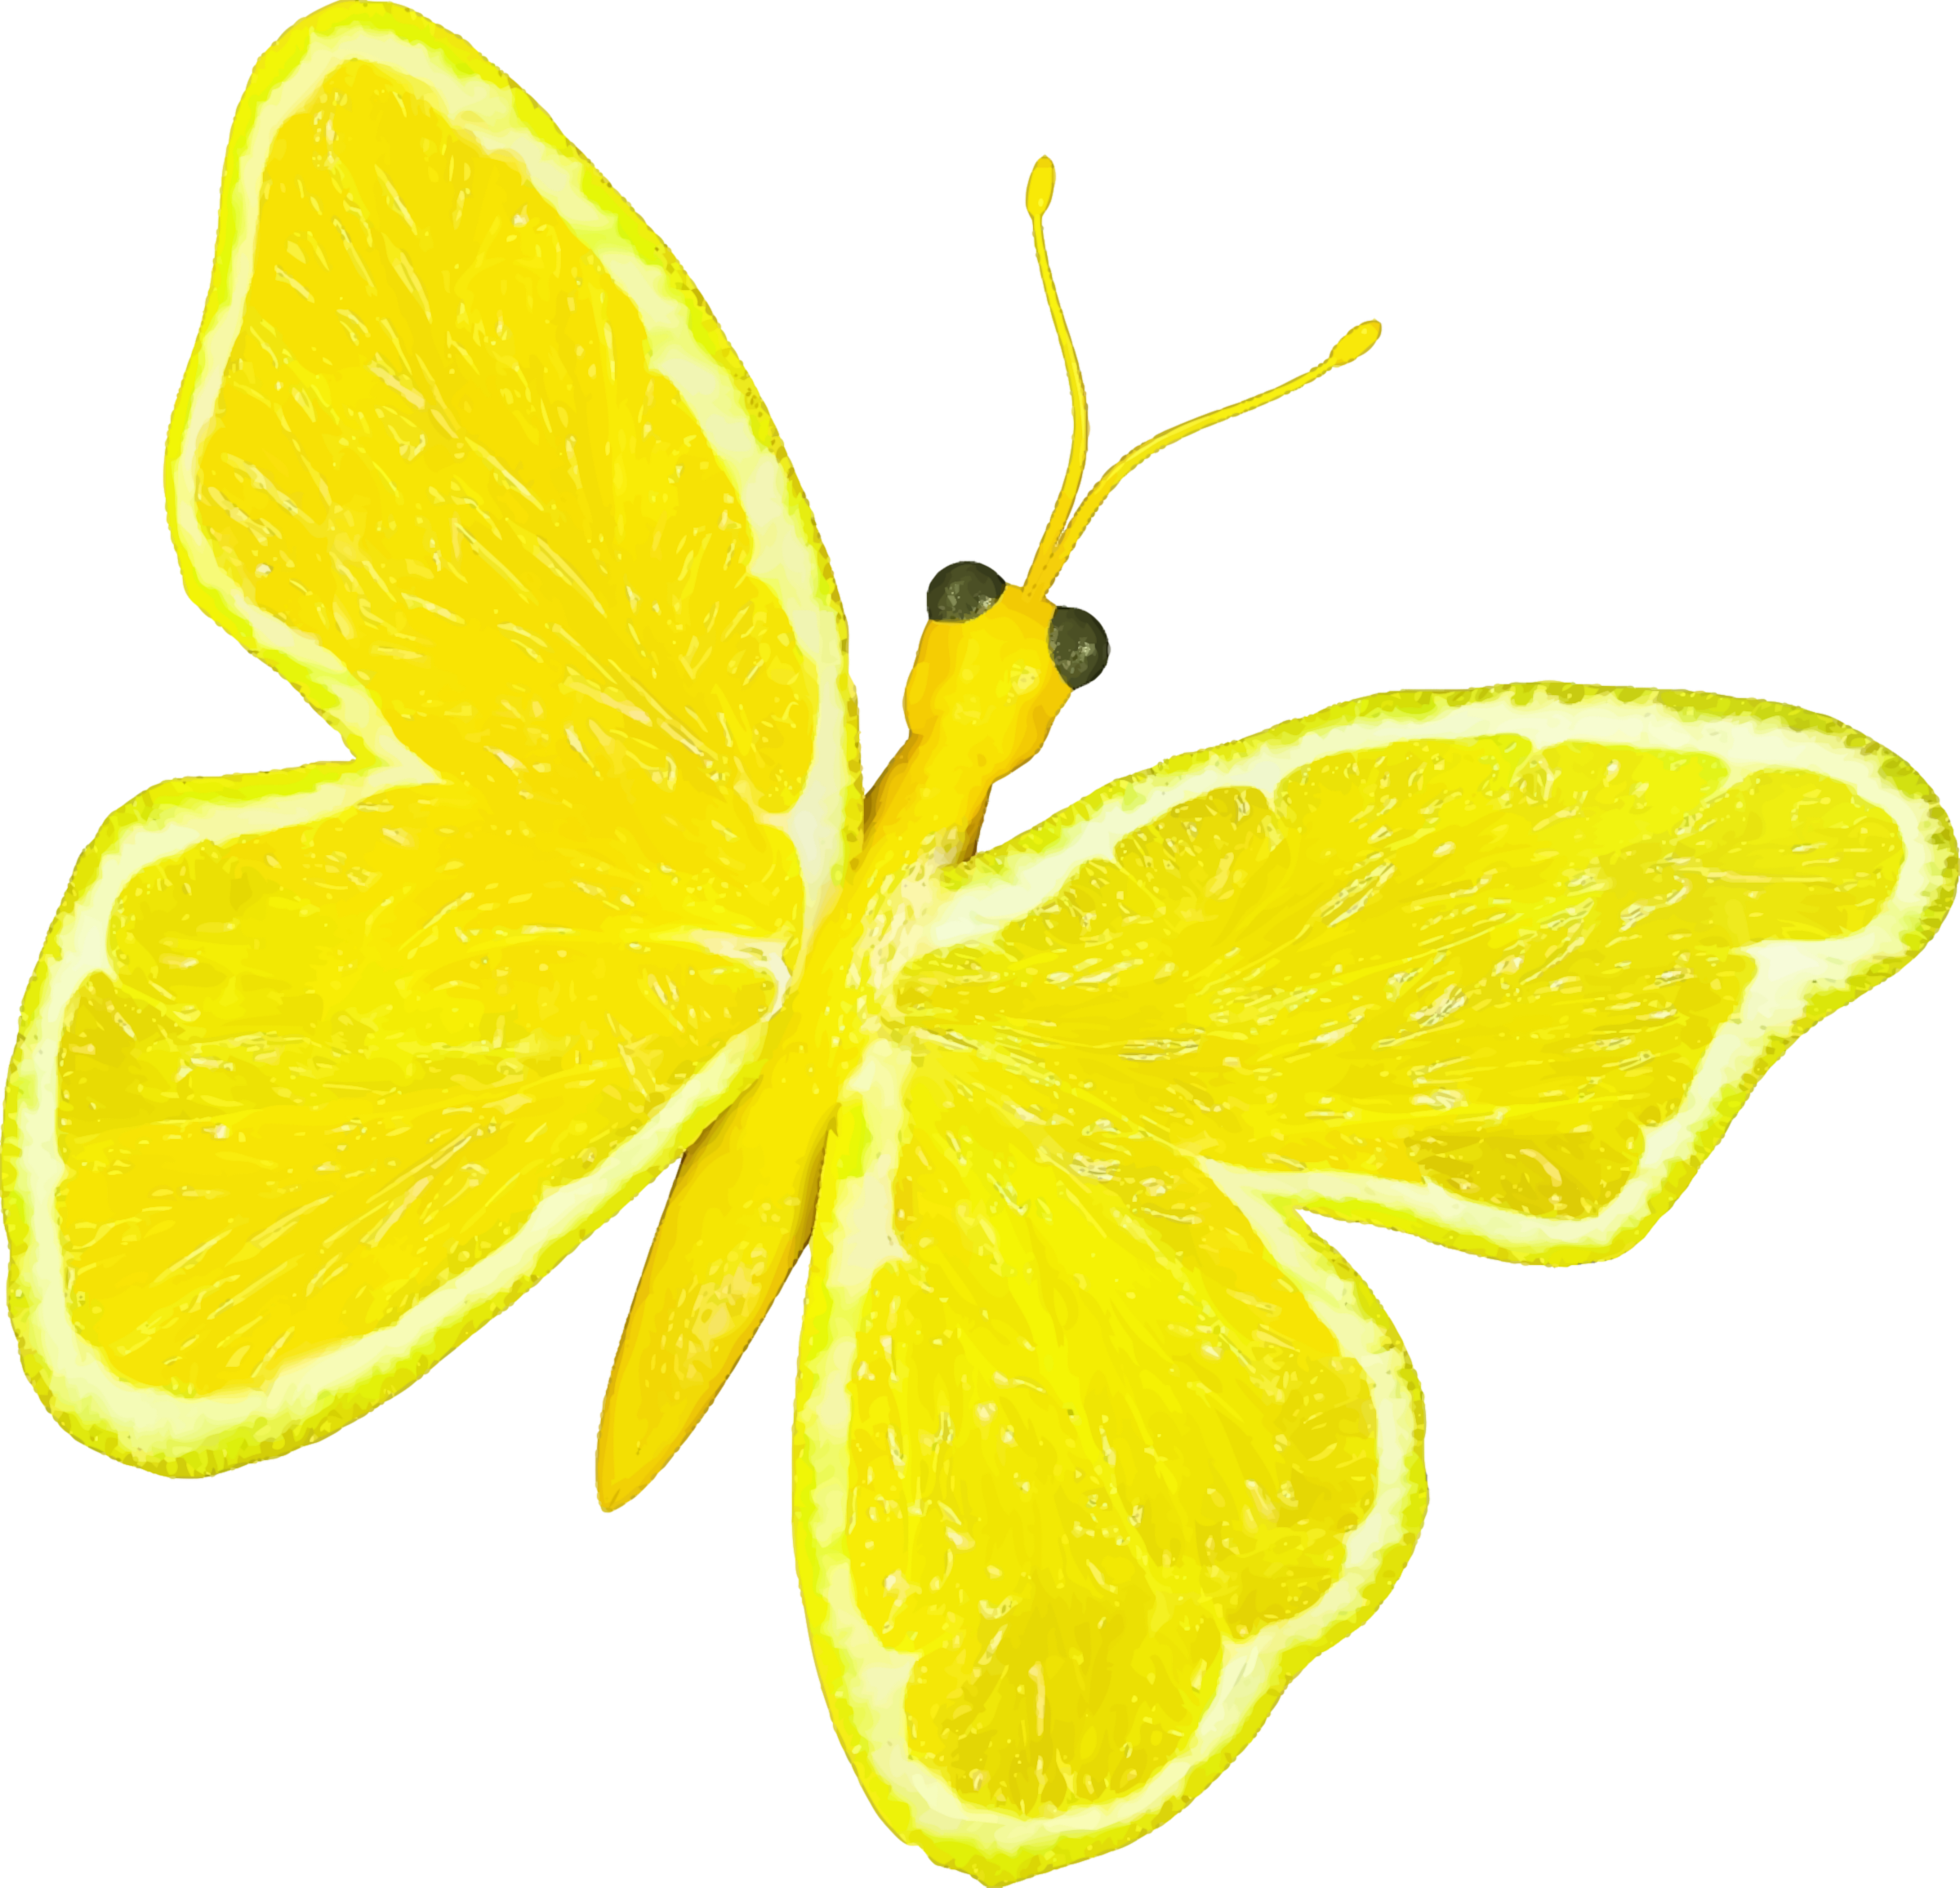 Citrus fruit butterfly (lemon) by Firkin